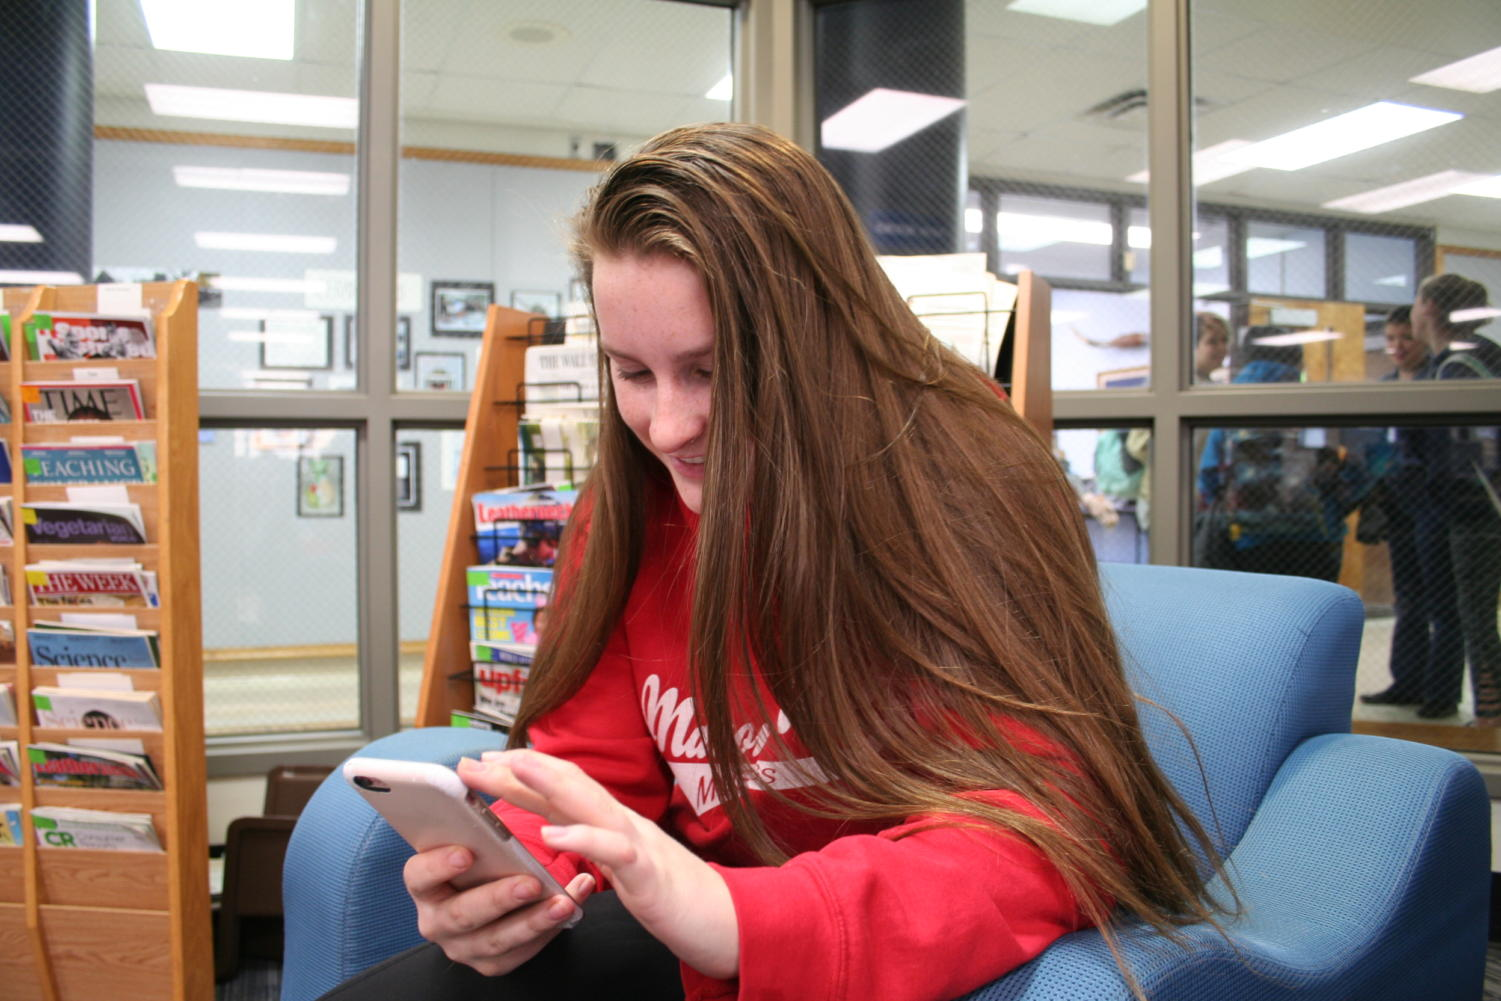 """INSTANT ENCOURAGEMENT, freshman Zoe Deyoung sends a text. As part of her New Year's resolution, Deyoung plans to encourage someone through a note or text daily. """"Everyone's got their own story,"""" Deyoung said. """"I think that everyone can use a little encouragement."""""""